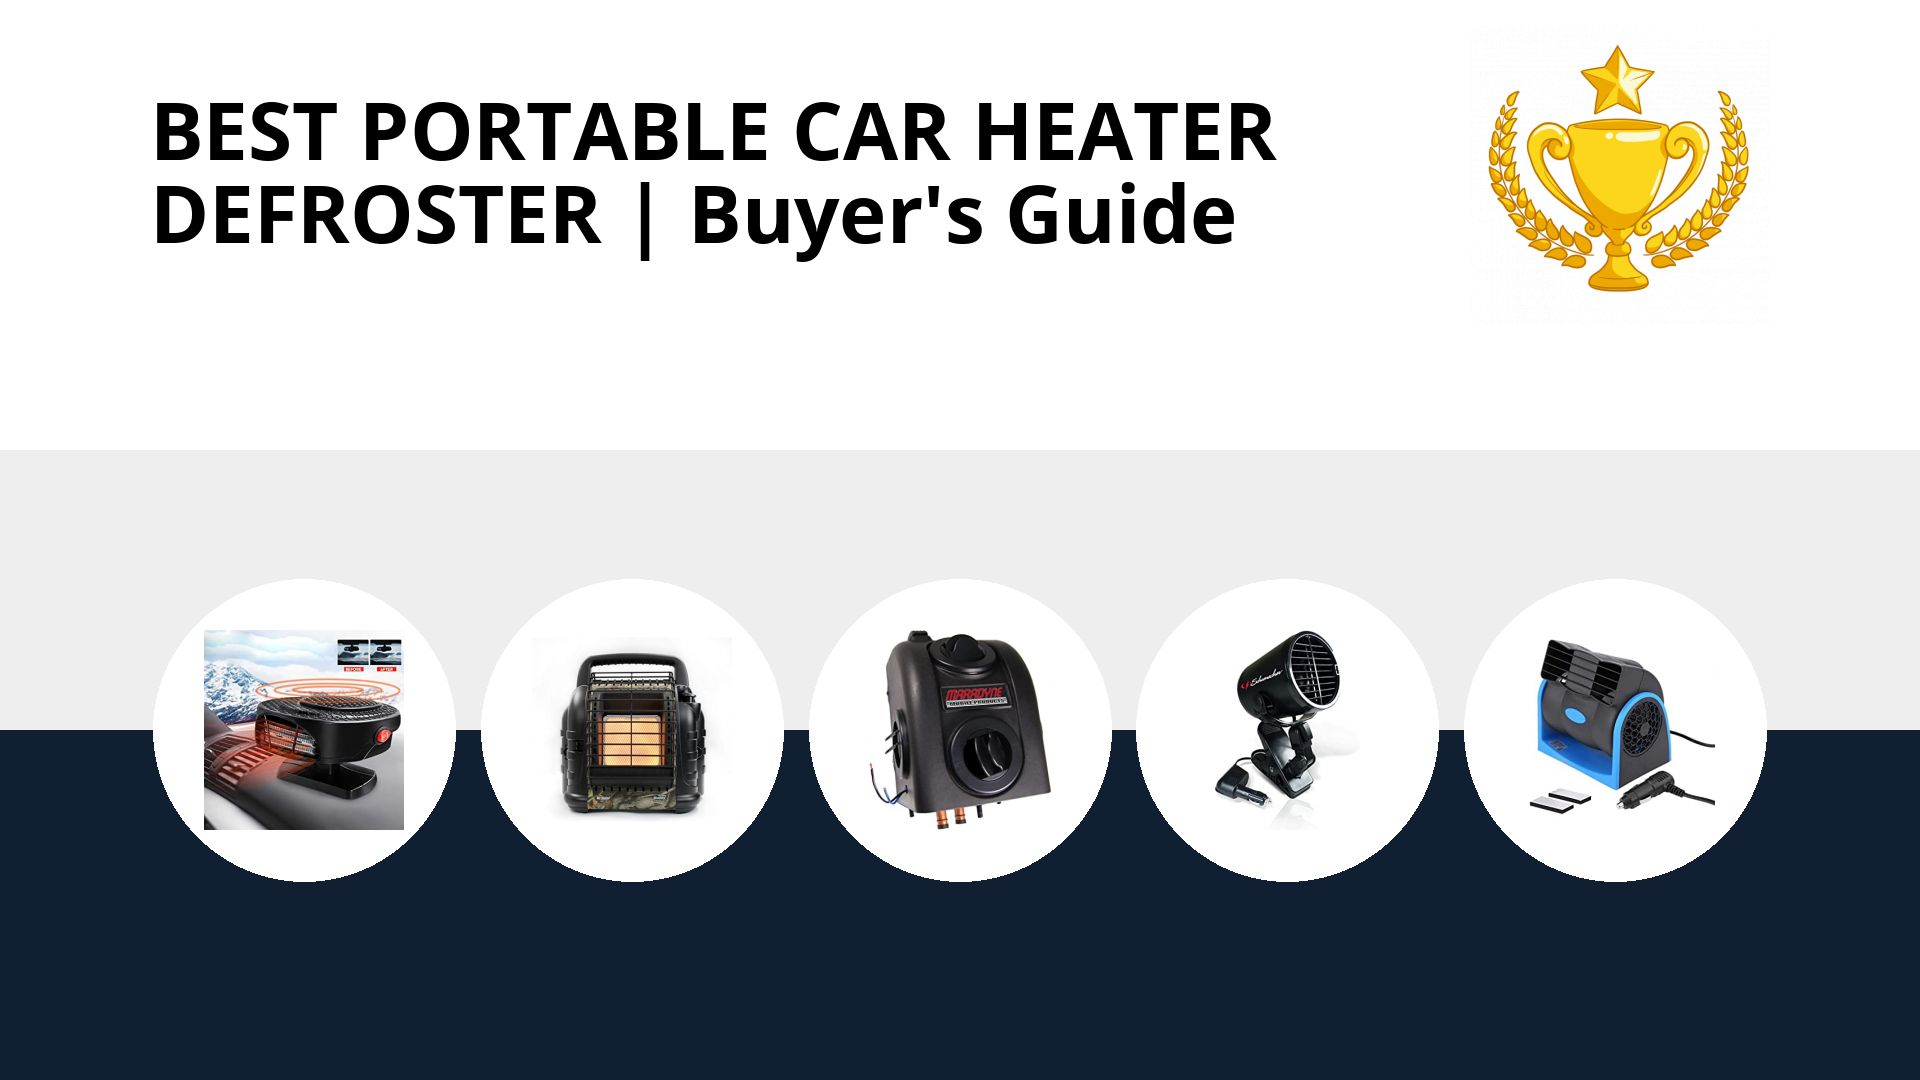 Best Portable Car Heater Defroster: image